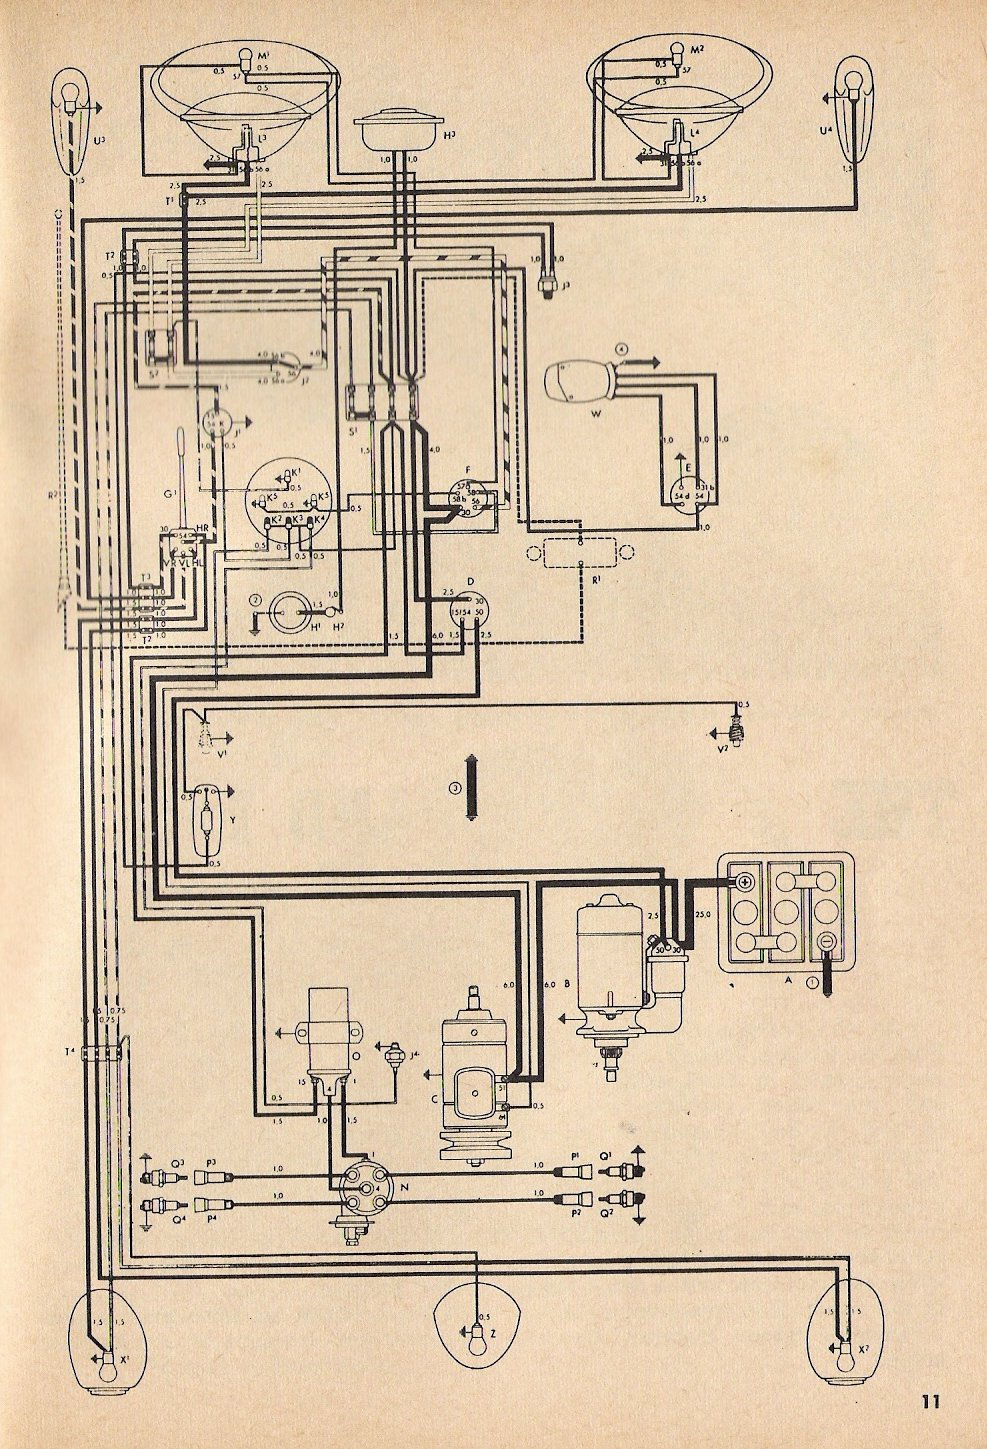 bug_toaug57 thesamba com type 1 wiring diagrams 1964 VW Beetle Wiring Diagram at creativeand.co